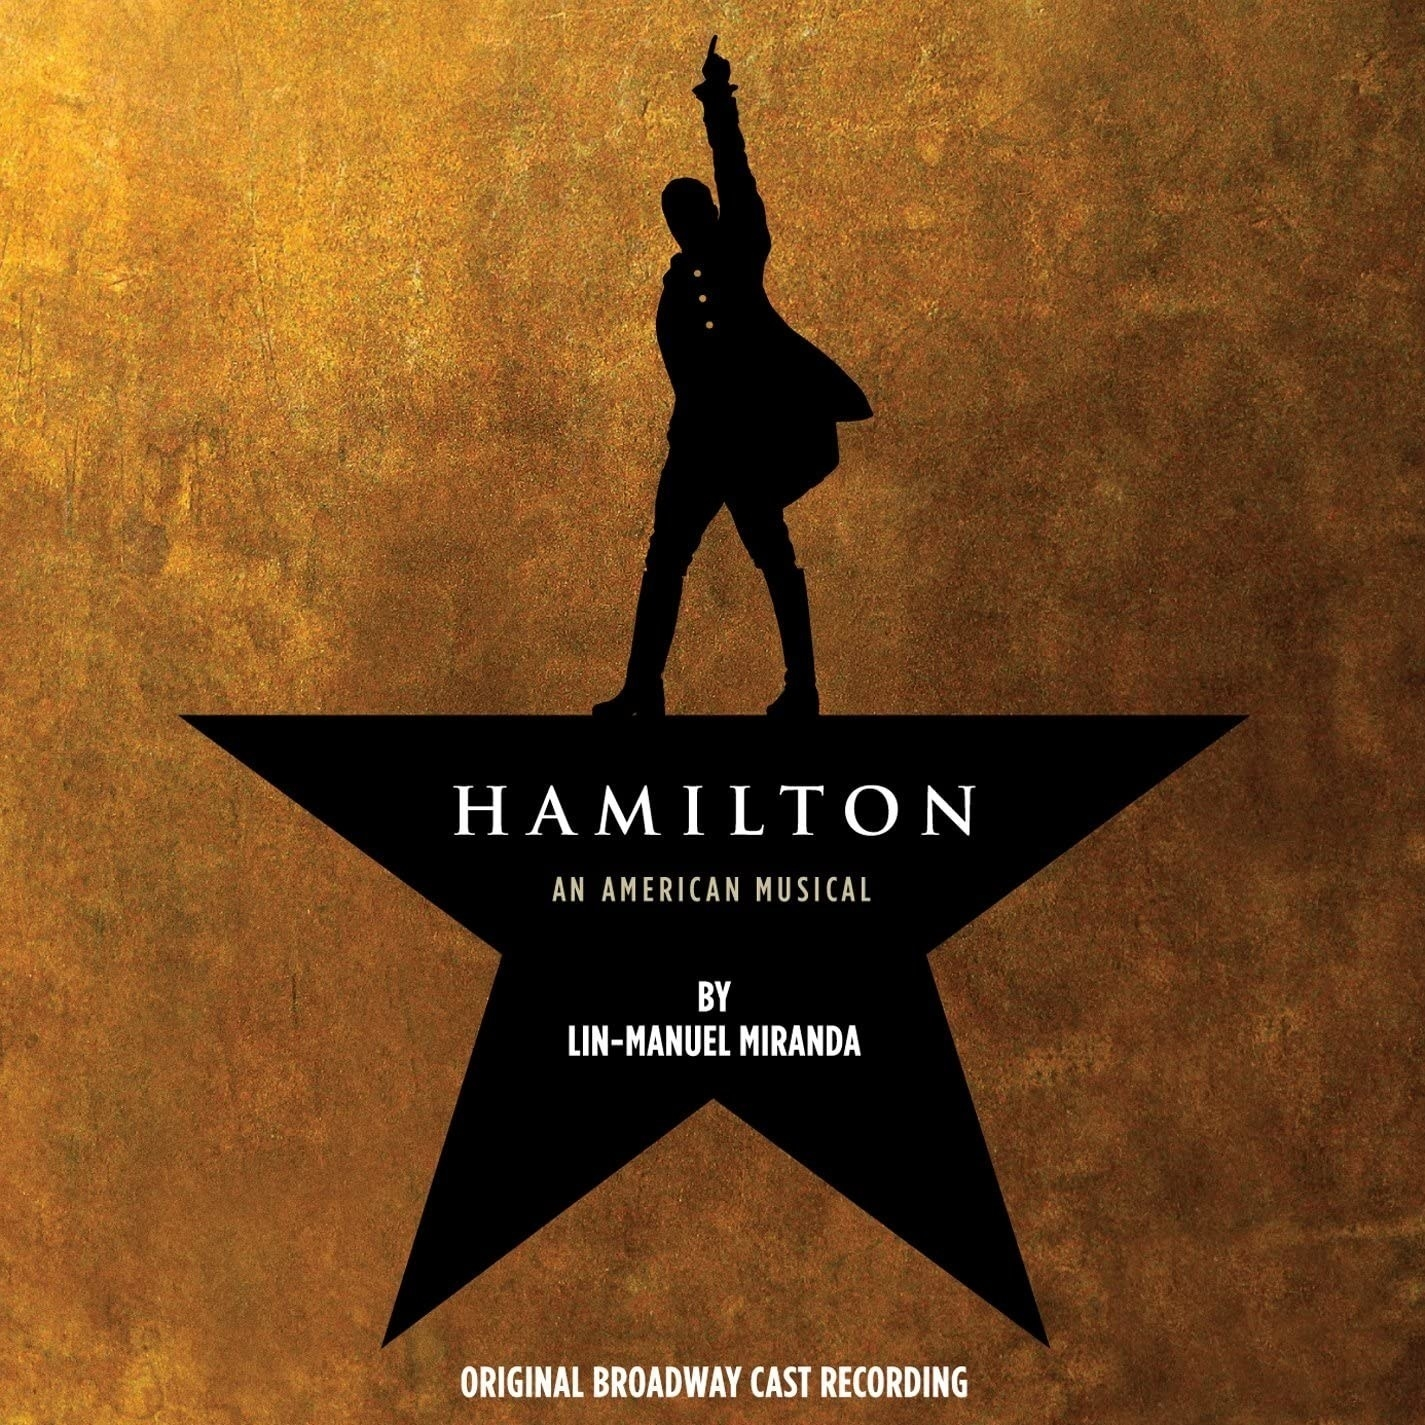 album cover of Hamilton, showing Hamilton's silhouette depicted as the top point of a star